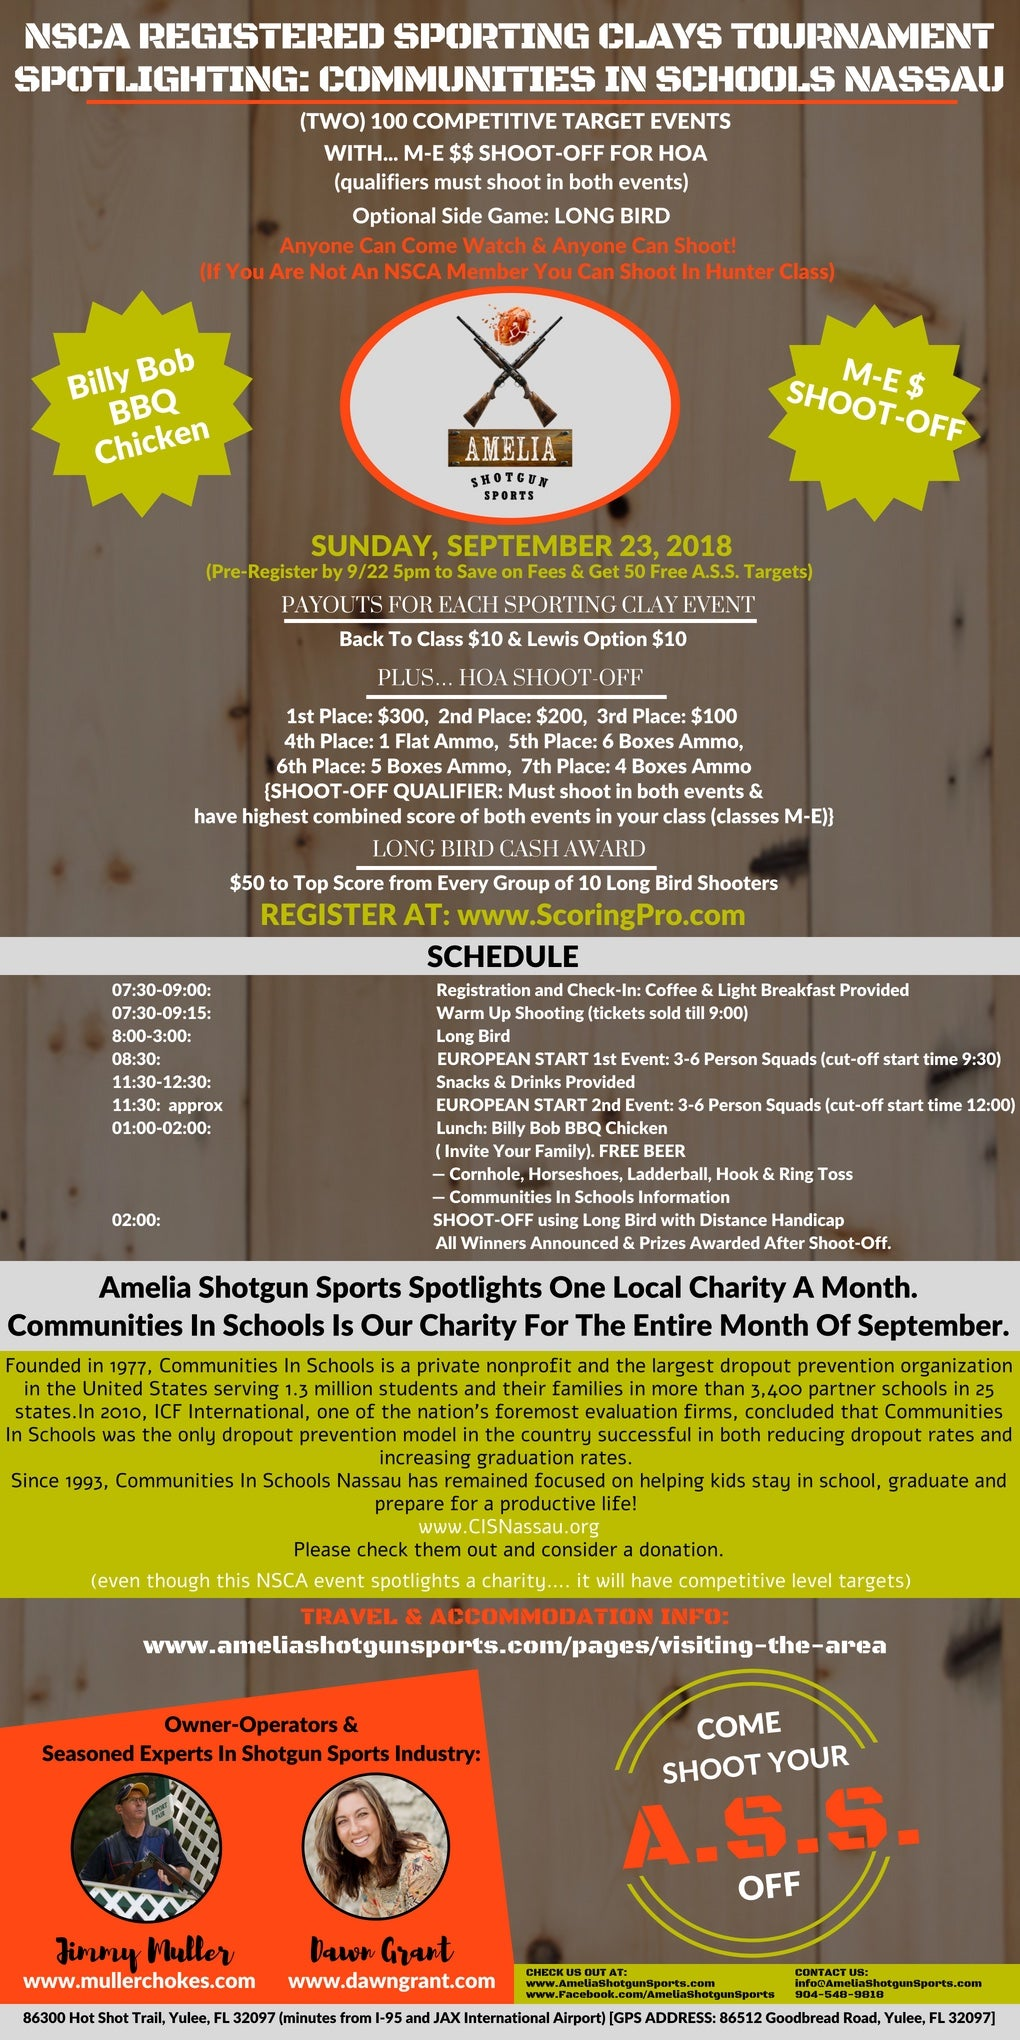 9/23 NSCA EVENT: two 100 events with M-E $HOA Shoot Off, & optional Long Bird